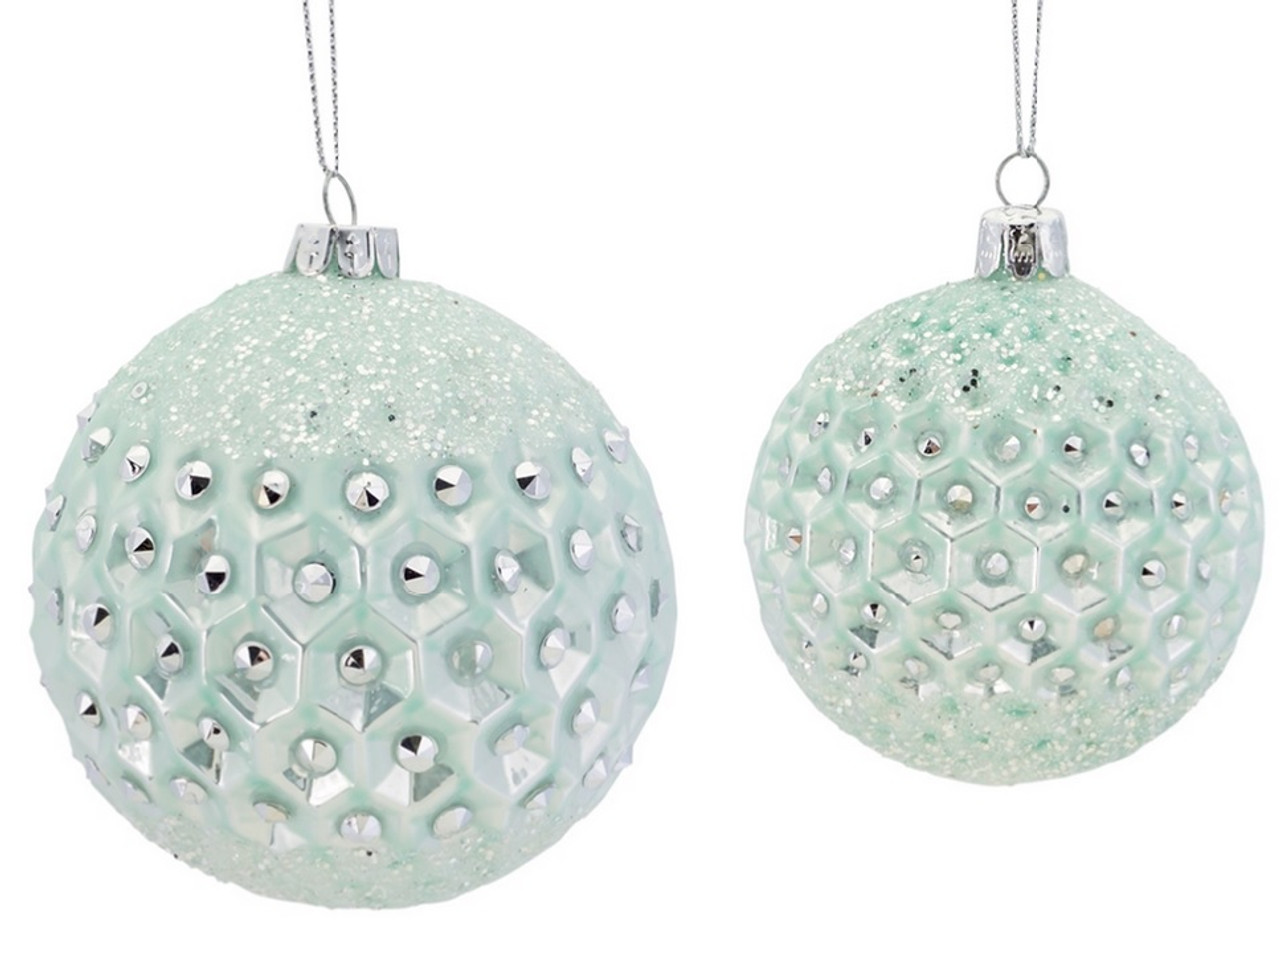 Set of 2 Silent Luxury Mint Green Frosted and Jeweled ...